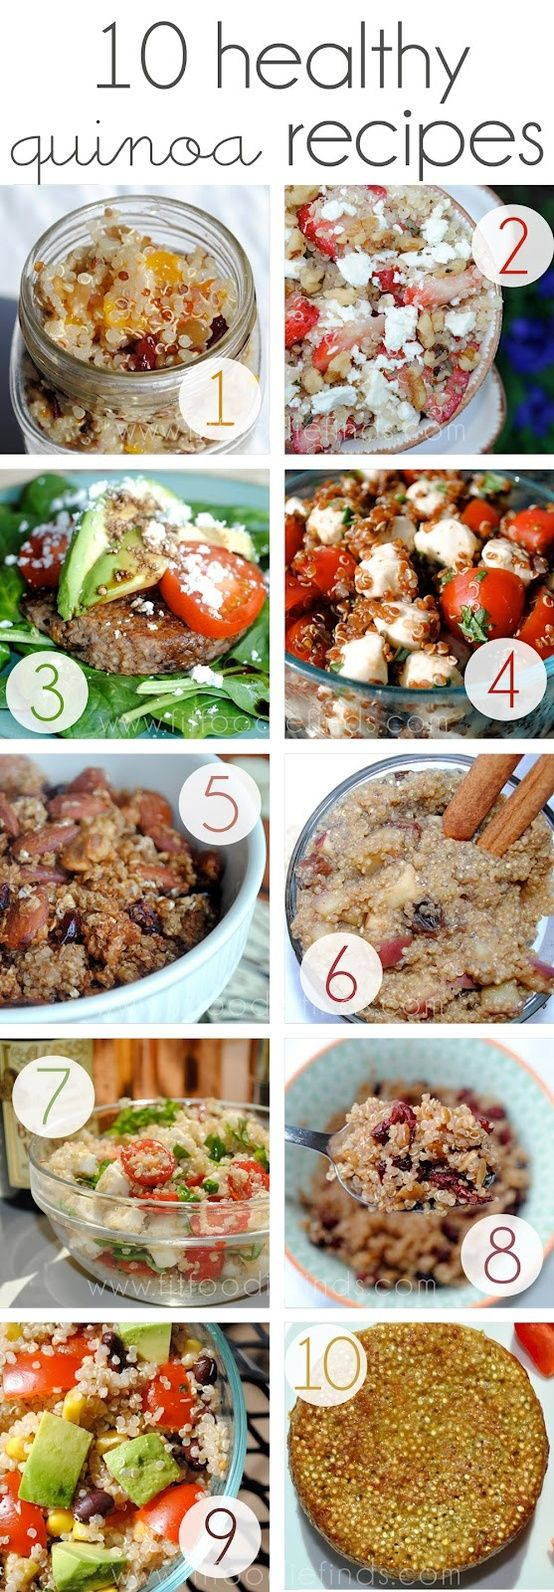 10 healthy quinoa recipes